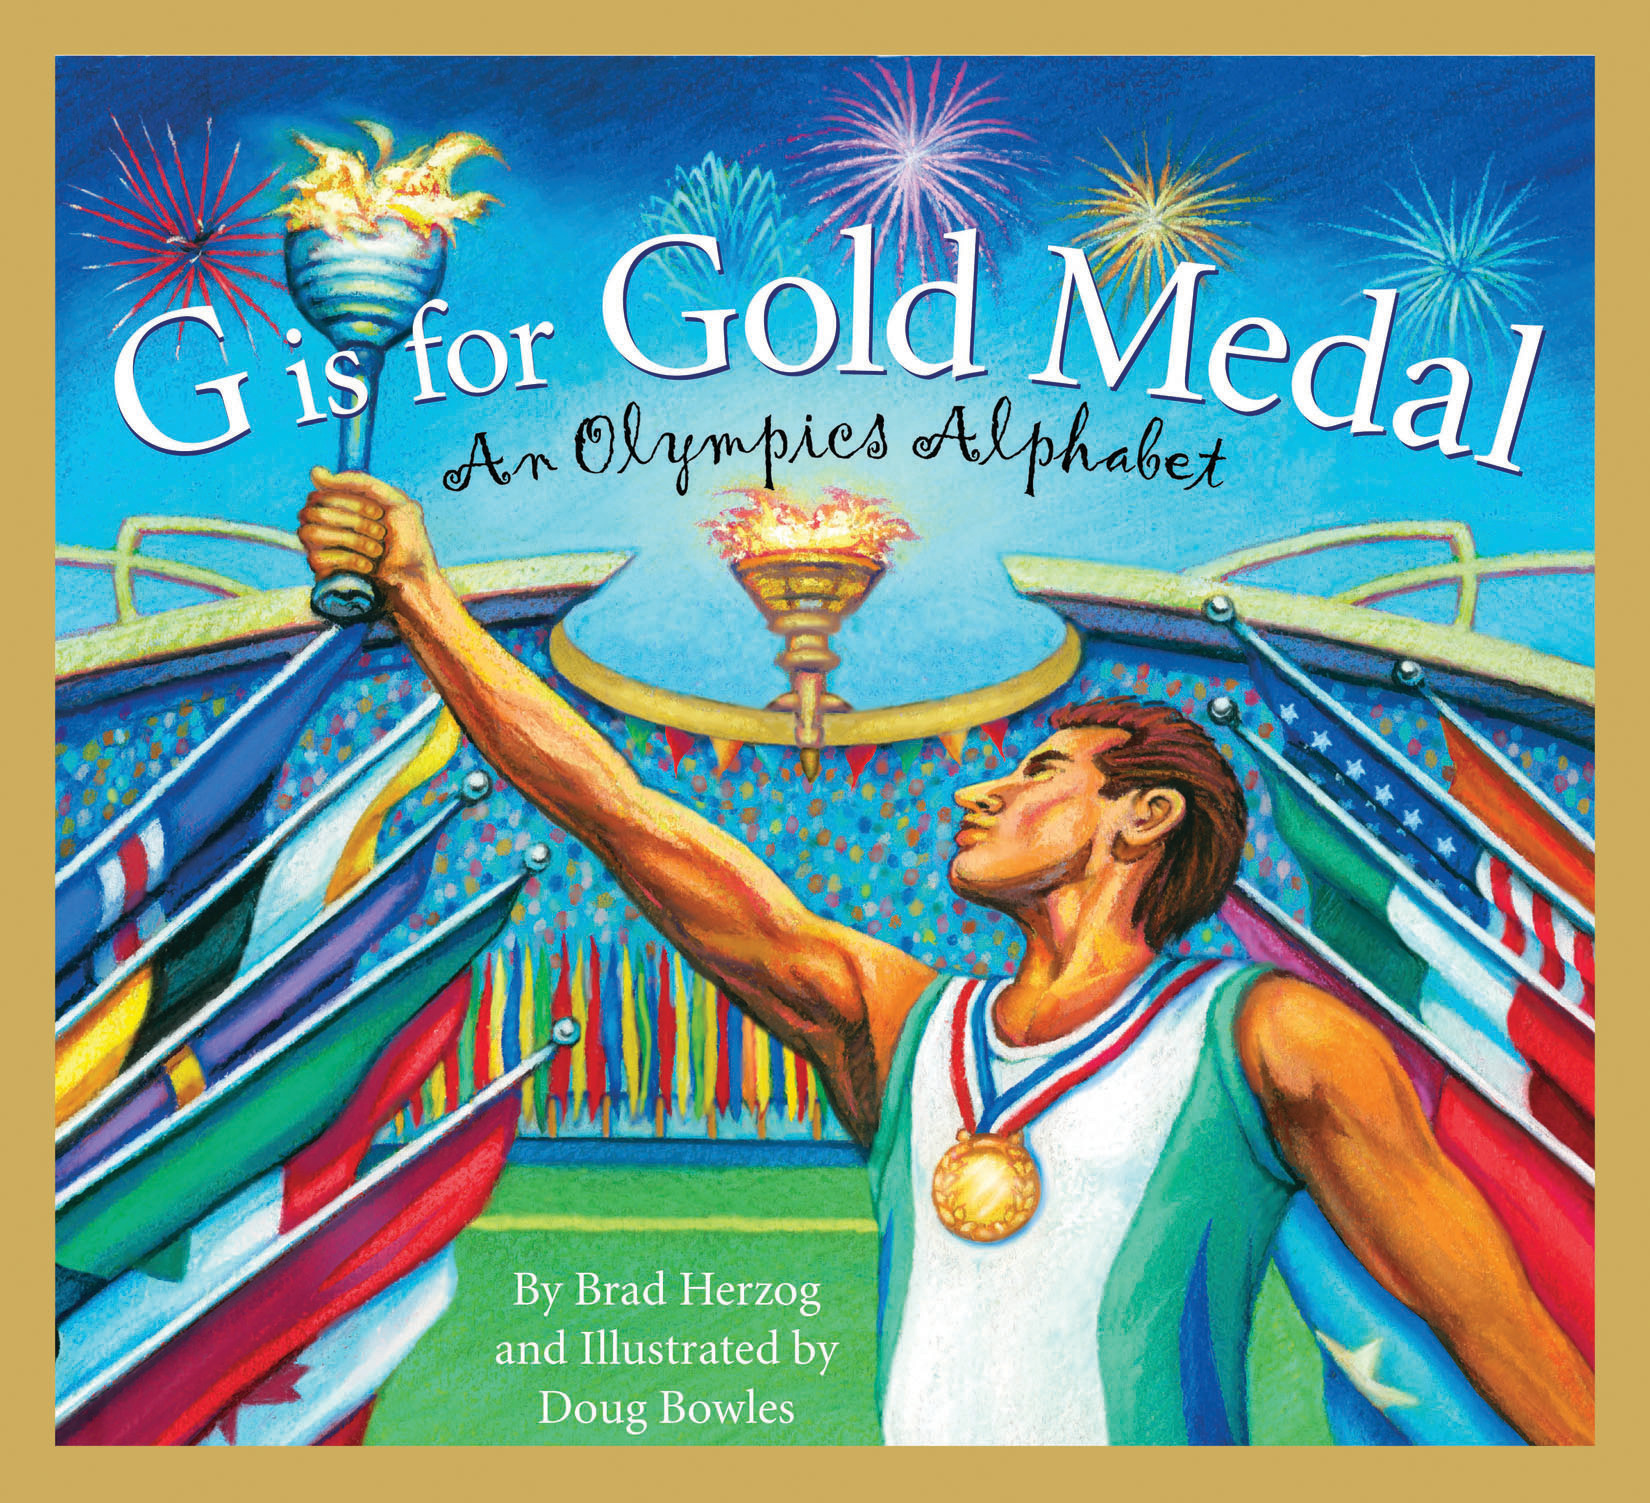 G is for Gold Medal An Olympics Alphabet